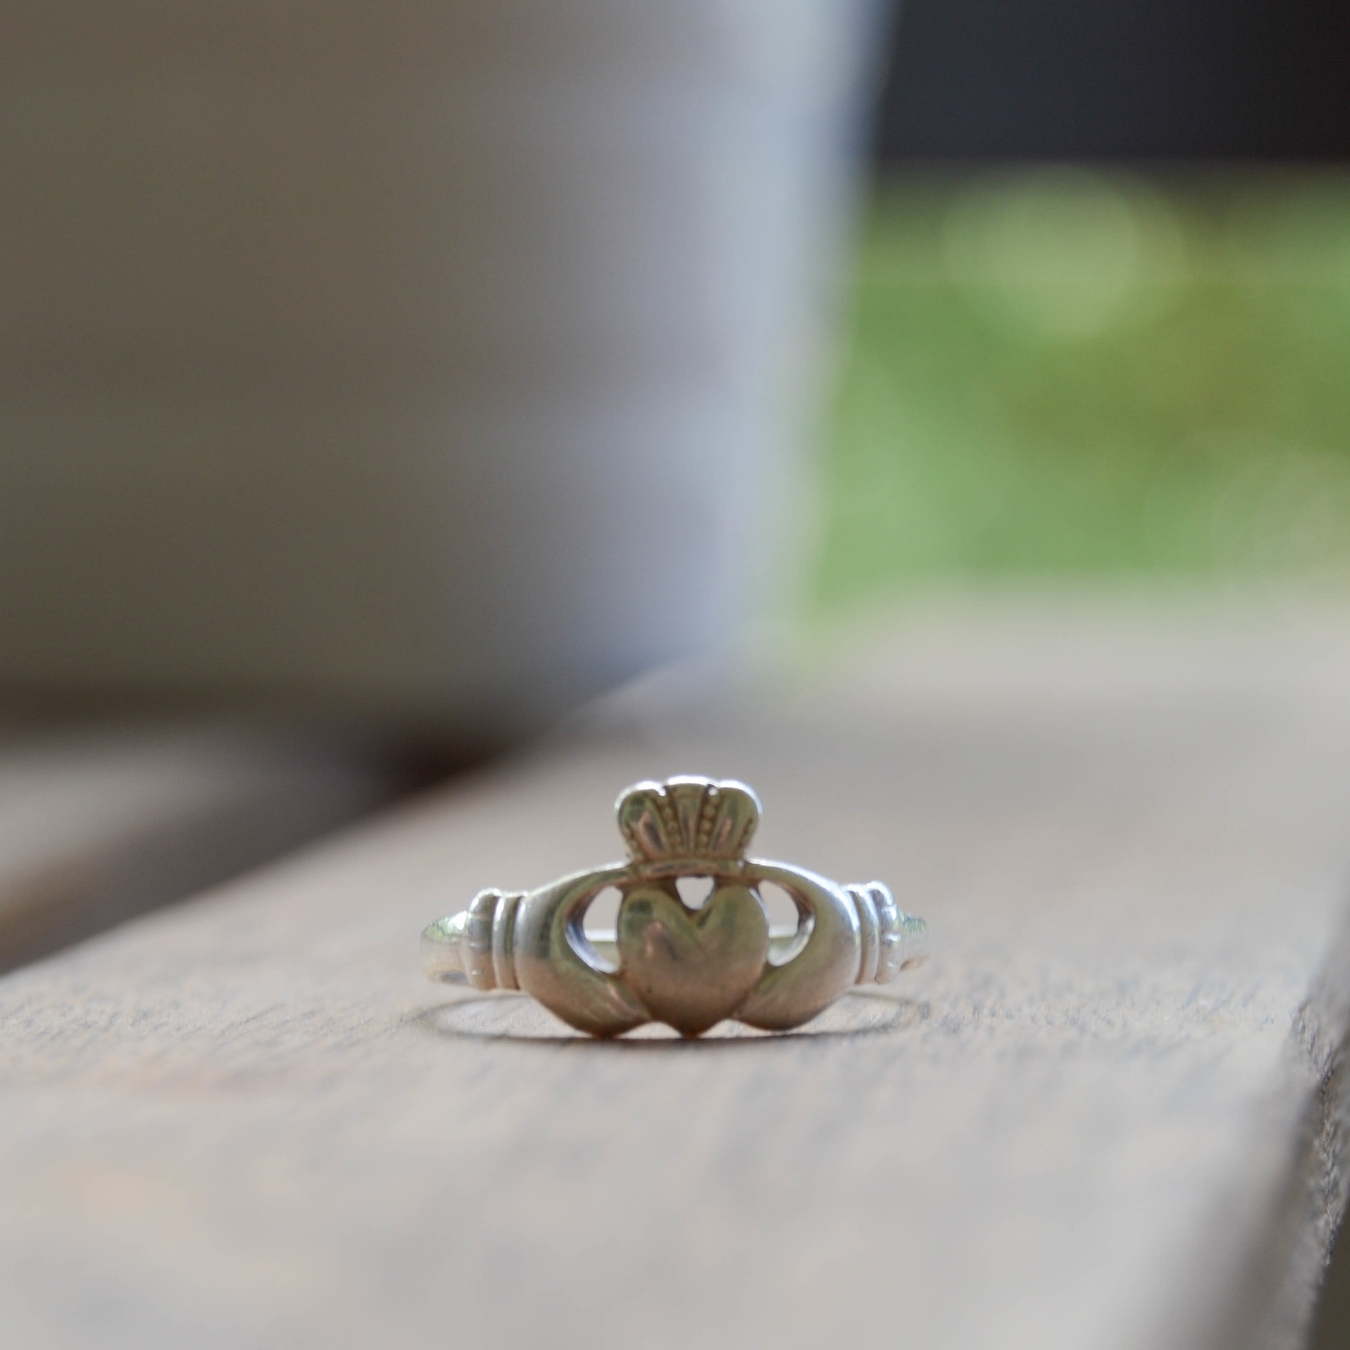 My (now worn and warped) Claddagh ring.